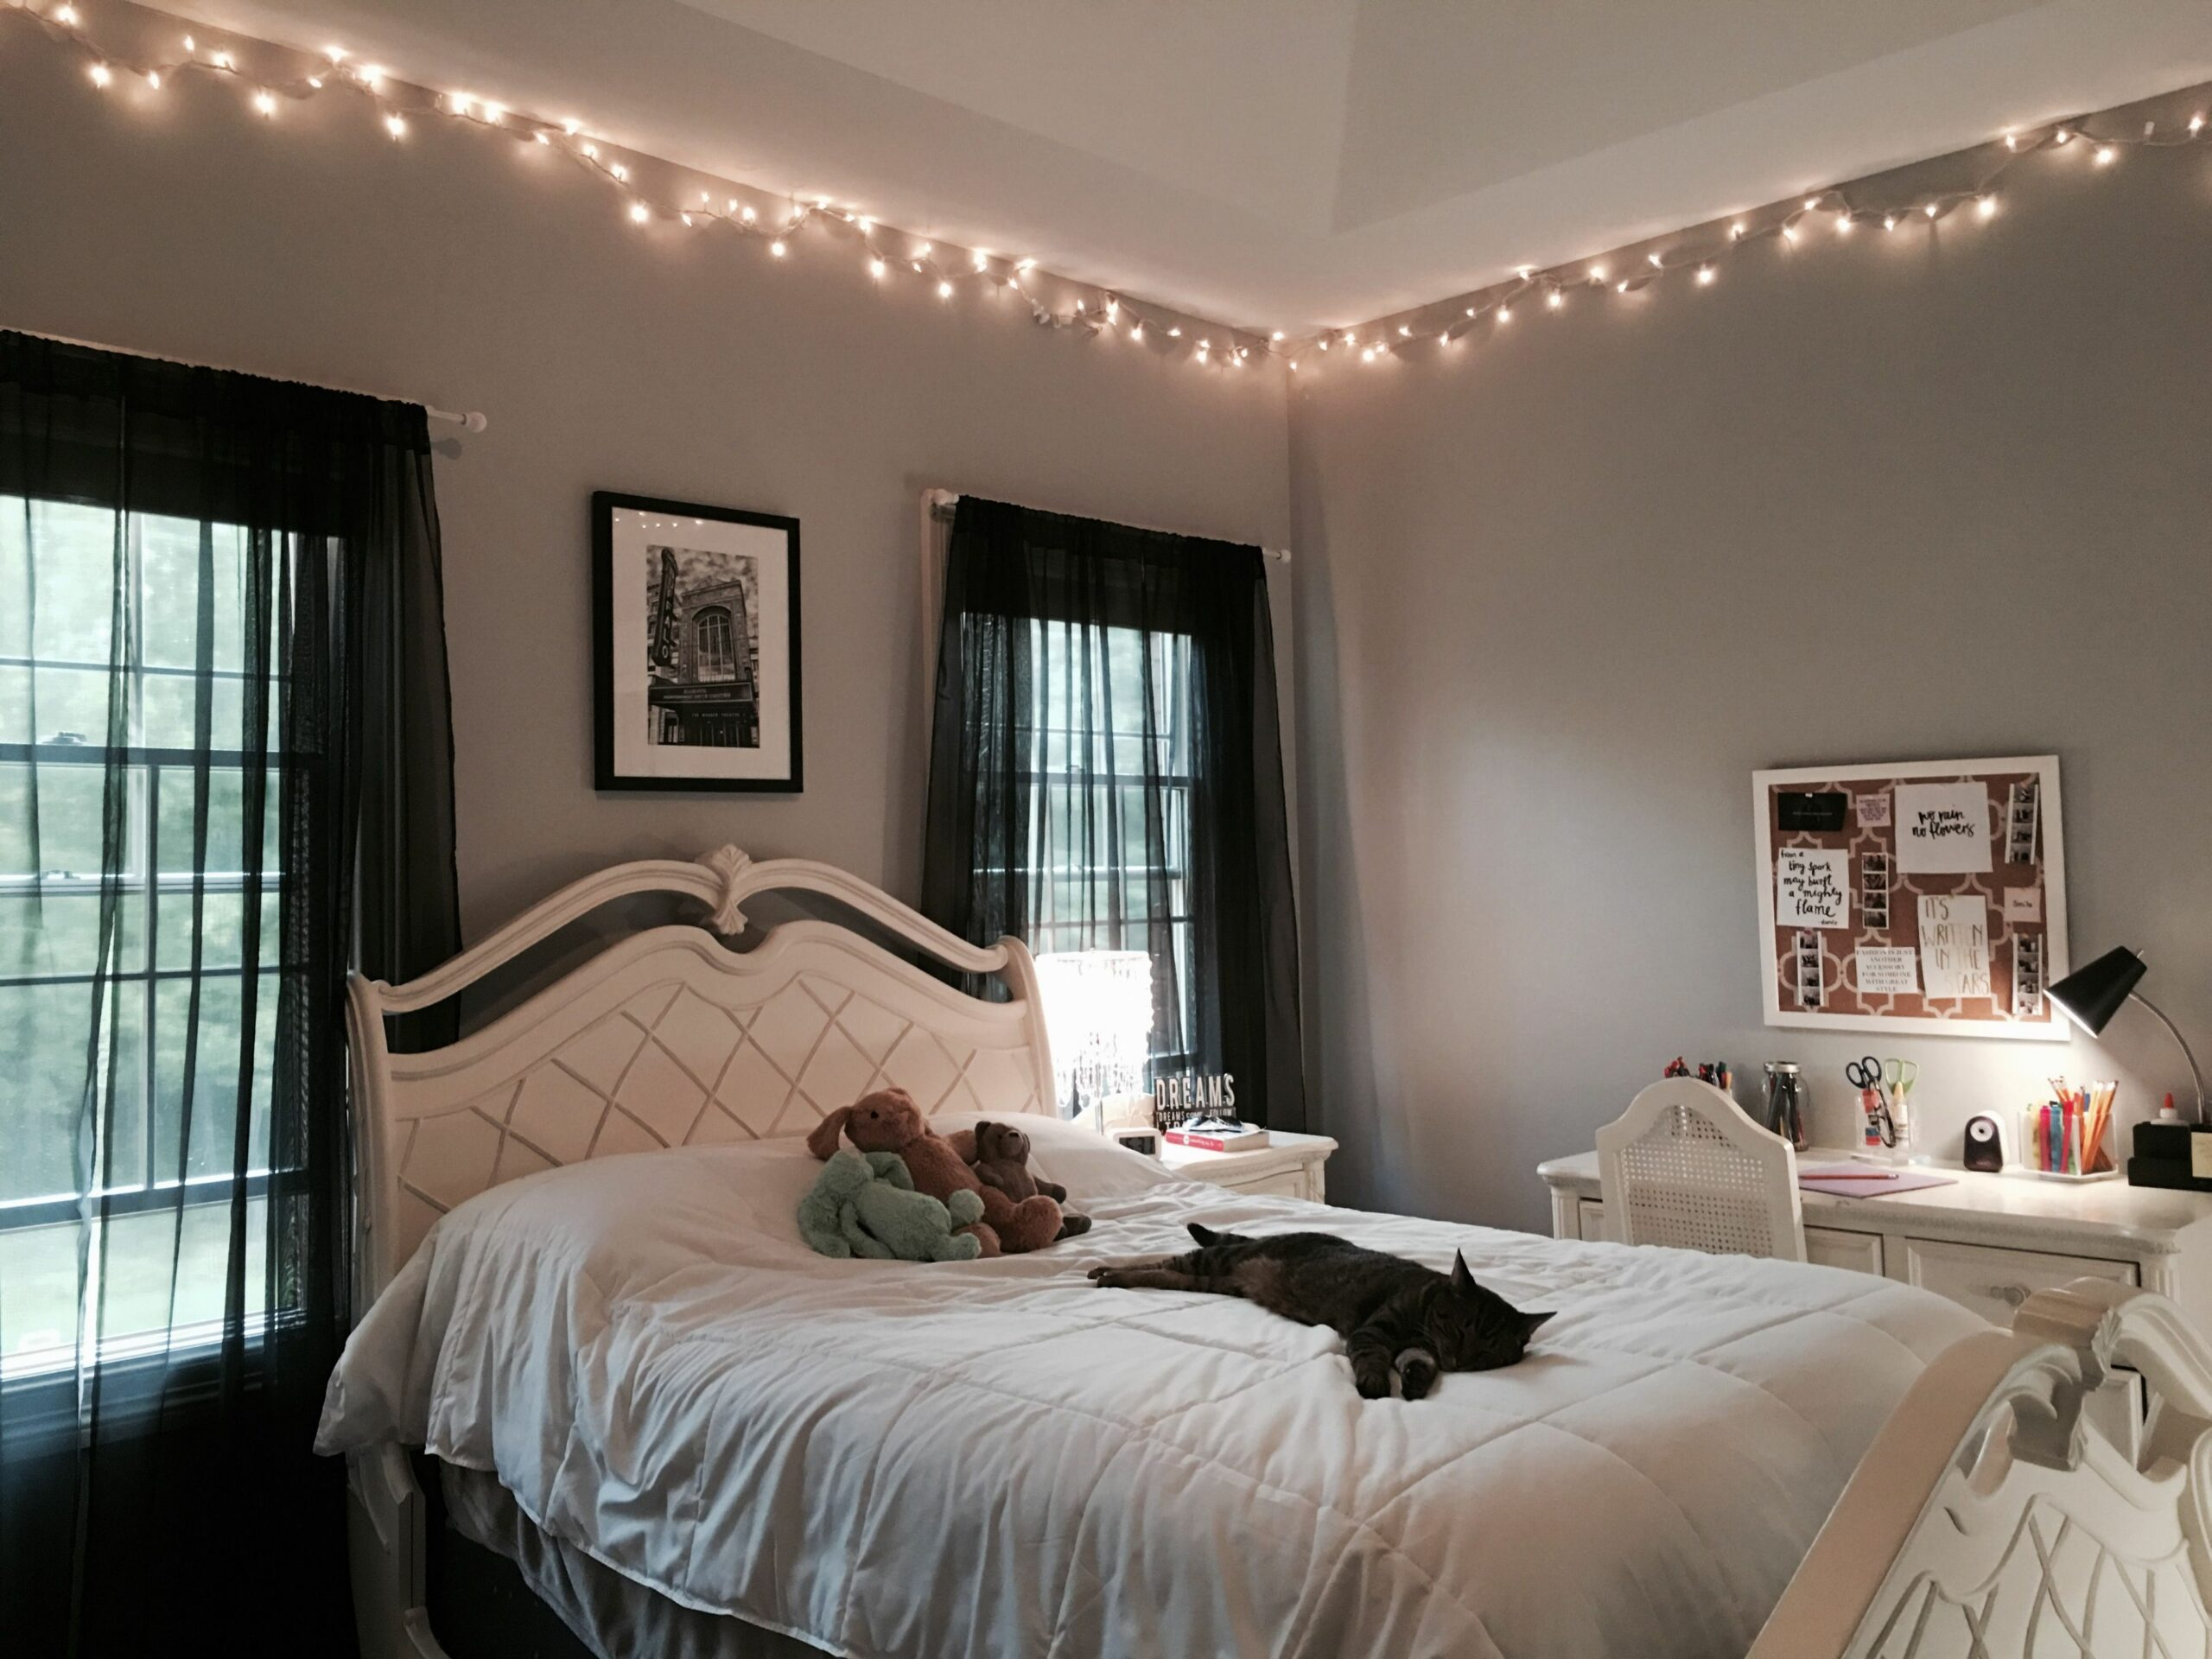 Pin by Leanora on Bedrooms | Living room ideas young, Living room ...